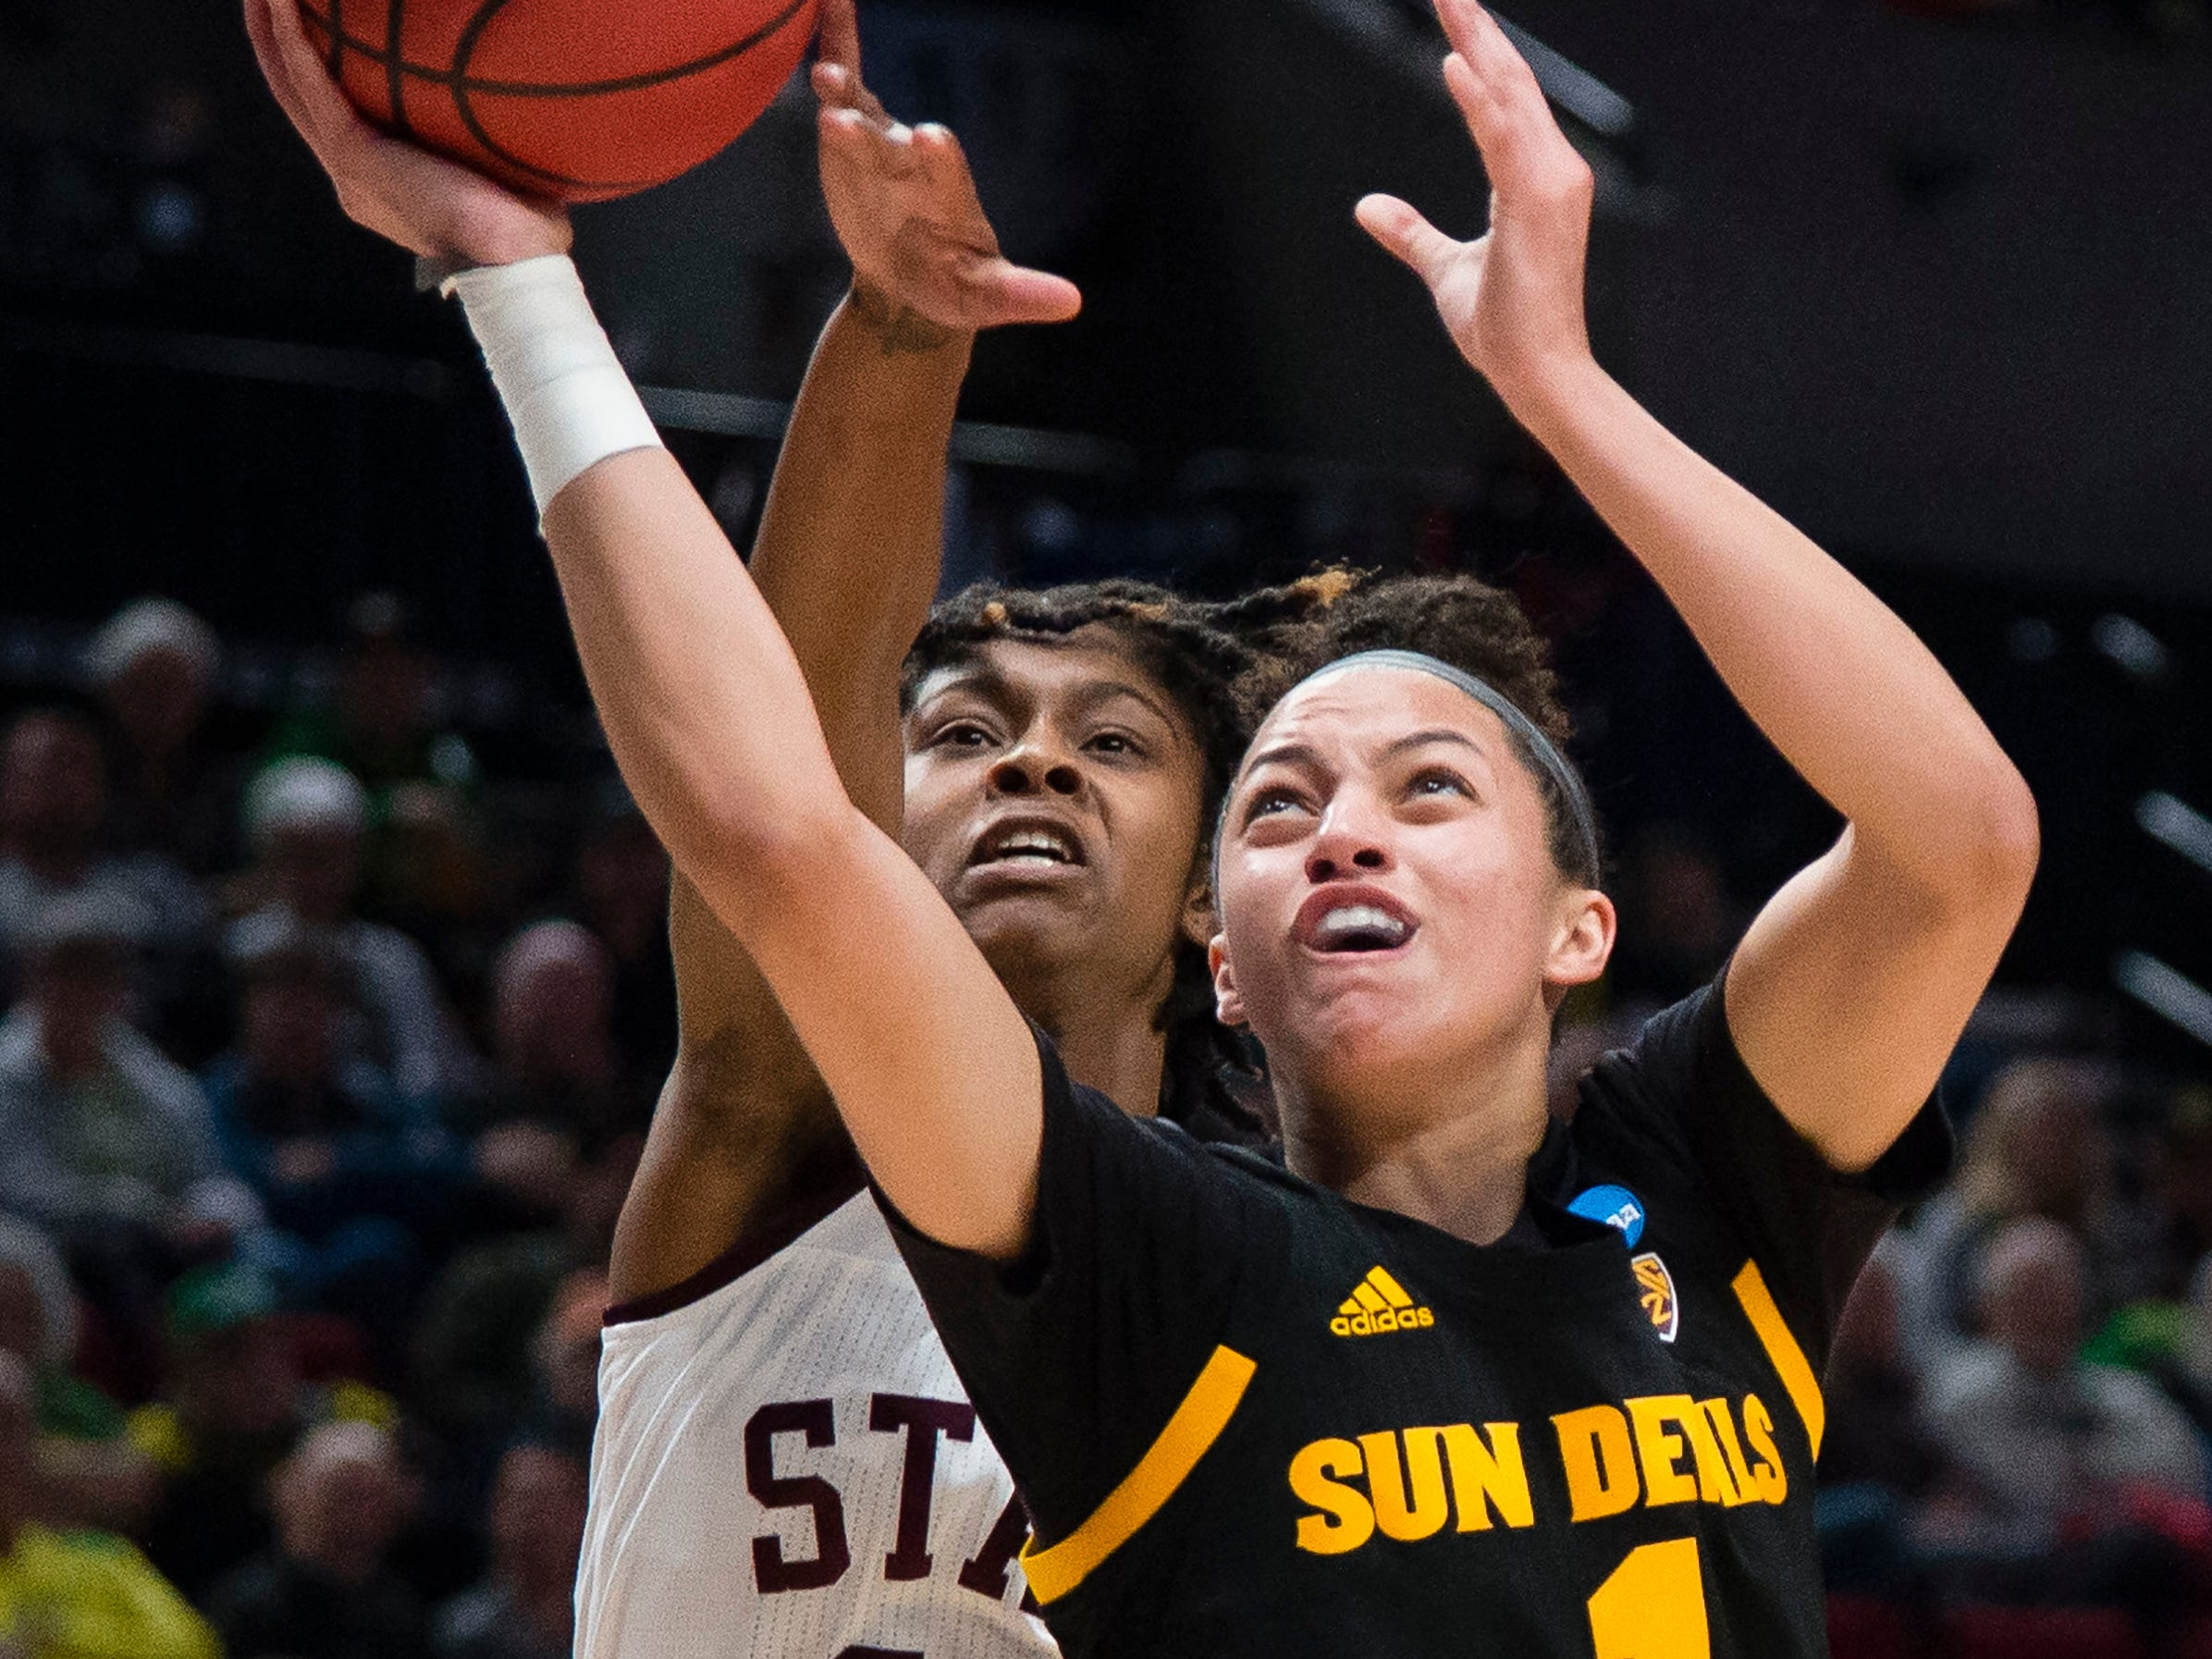 Mar 29, 2019; Portland, OR, USA; Arizona State Sun Devils guard Reili Richardson (1) drives to the basket against Mississippi State Bulldogs guard Jazzmun Holmes (10) during the first half in the semifinals of the Portland regional in the women's 2019 NCAA Tournament at Moda Center.